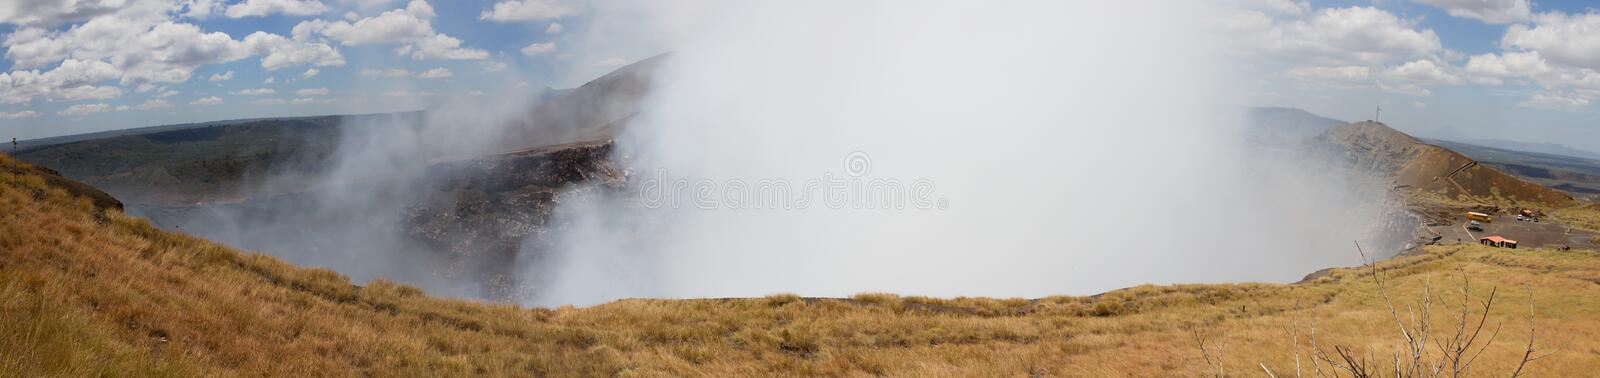 Panoramic view of Volcano Masaya. The view over the crater of the active Masaya volcano in Nicaragua. With smoke billowing out of the crater and over the cars stock photos